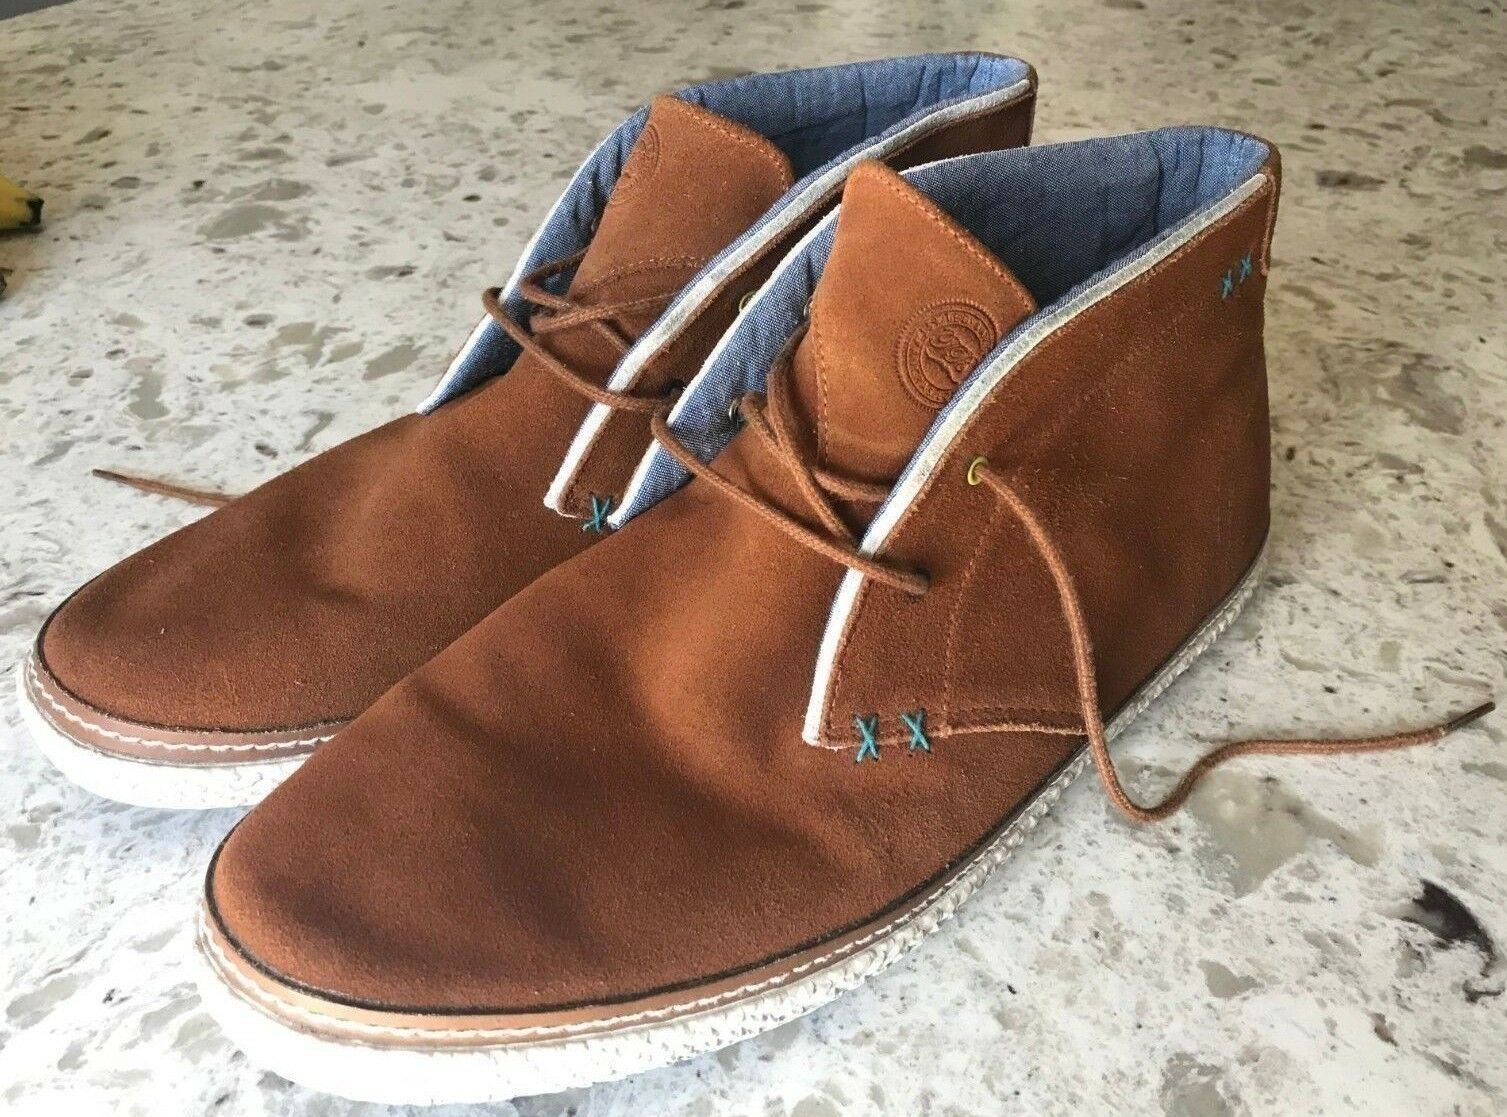 TED BAKERS Mens Saddle Tan SUEDE LEATHER Abdon 2 Desert Boots Size 12